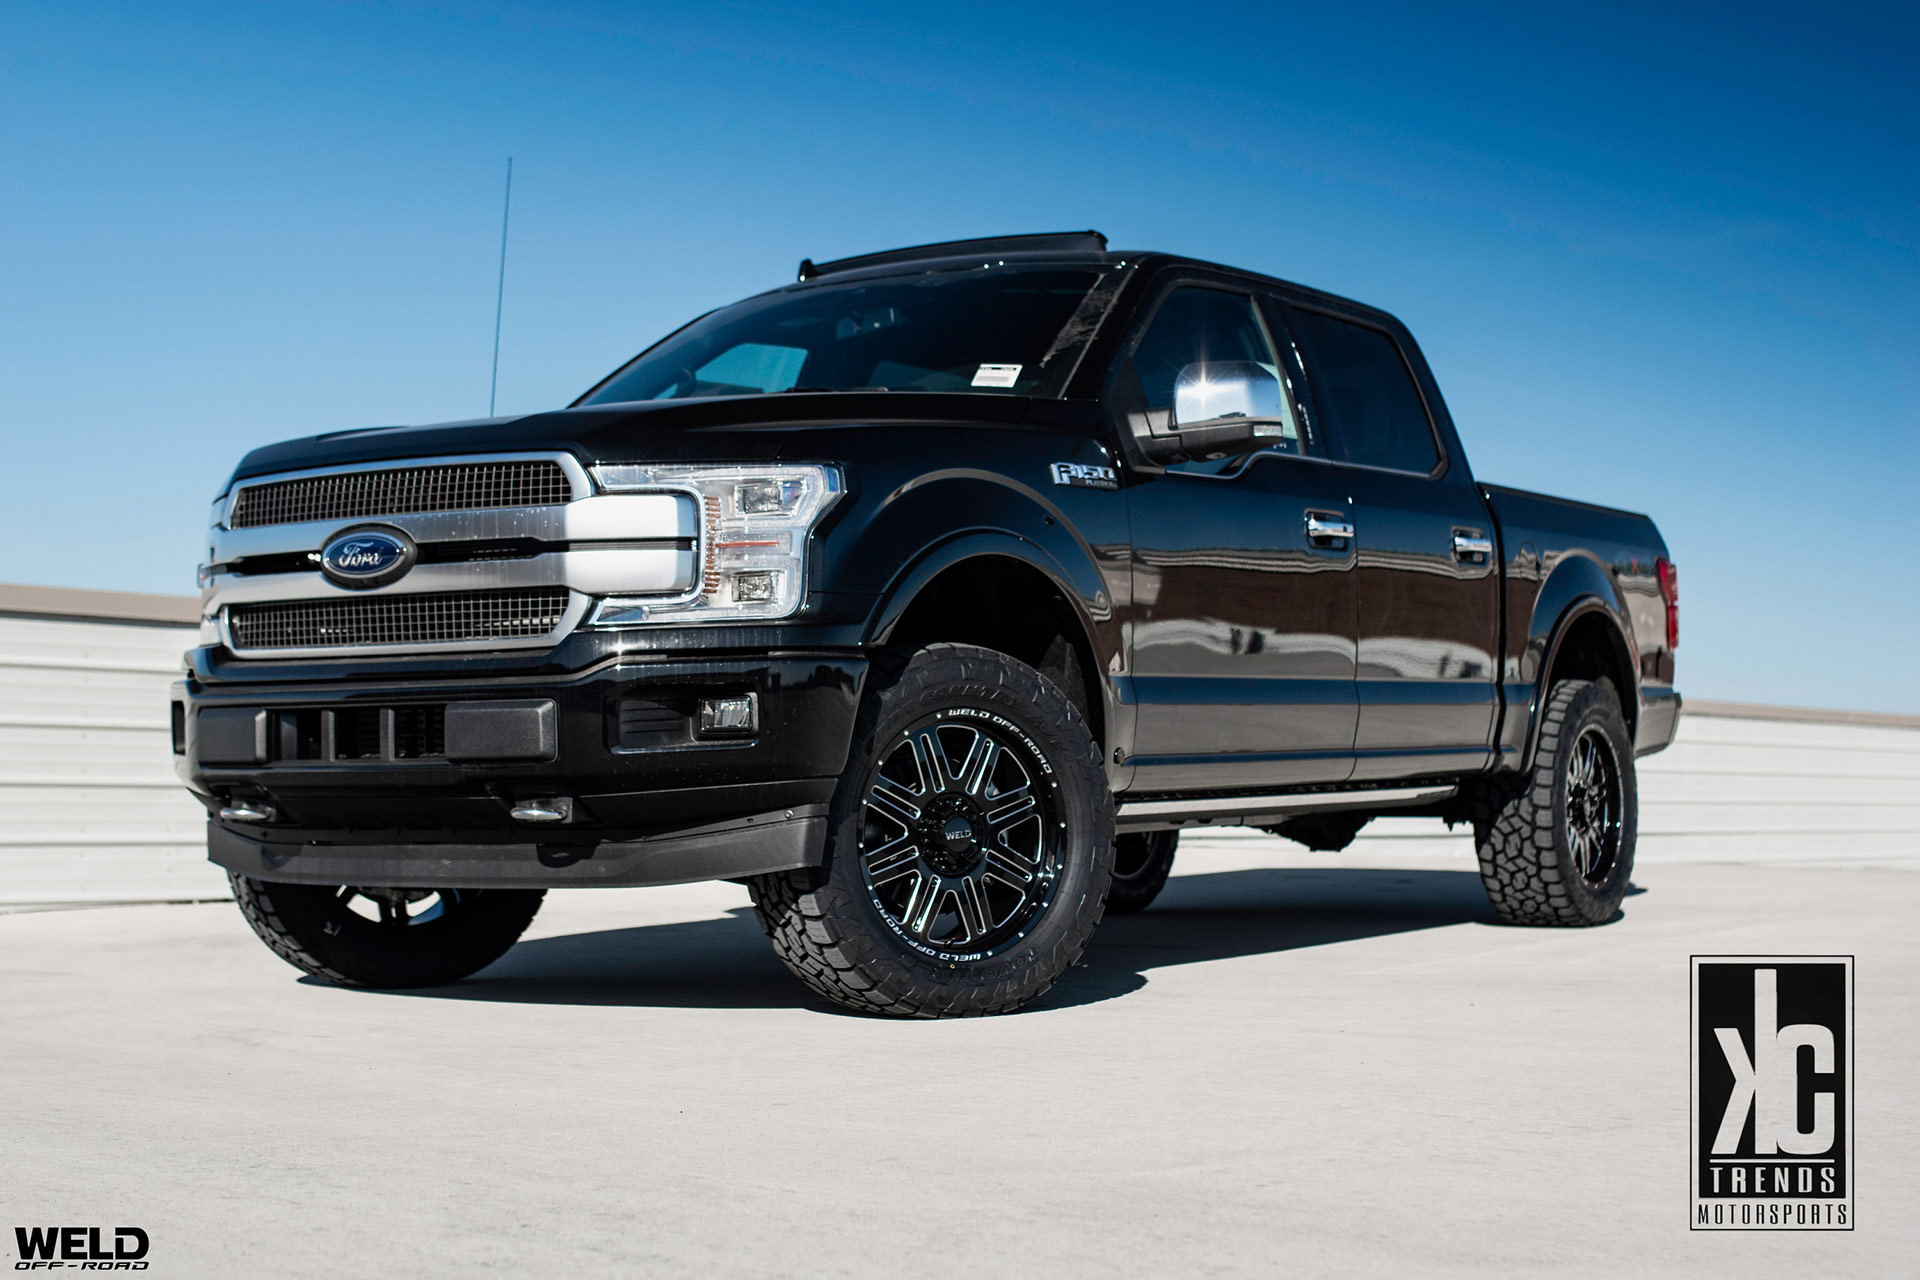 Black Ford F150 Platinum - WELD Off-Road Chasm Wheels in Gloss Black w/ Milled Accents